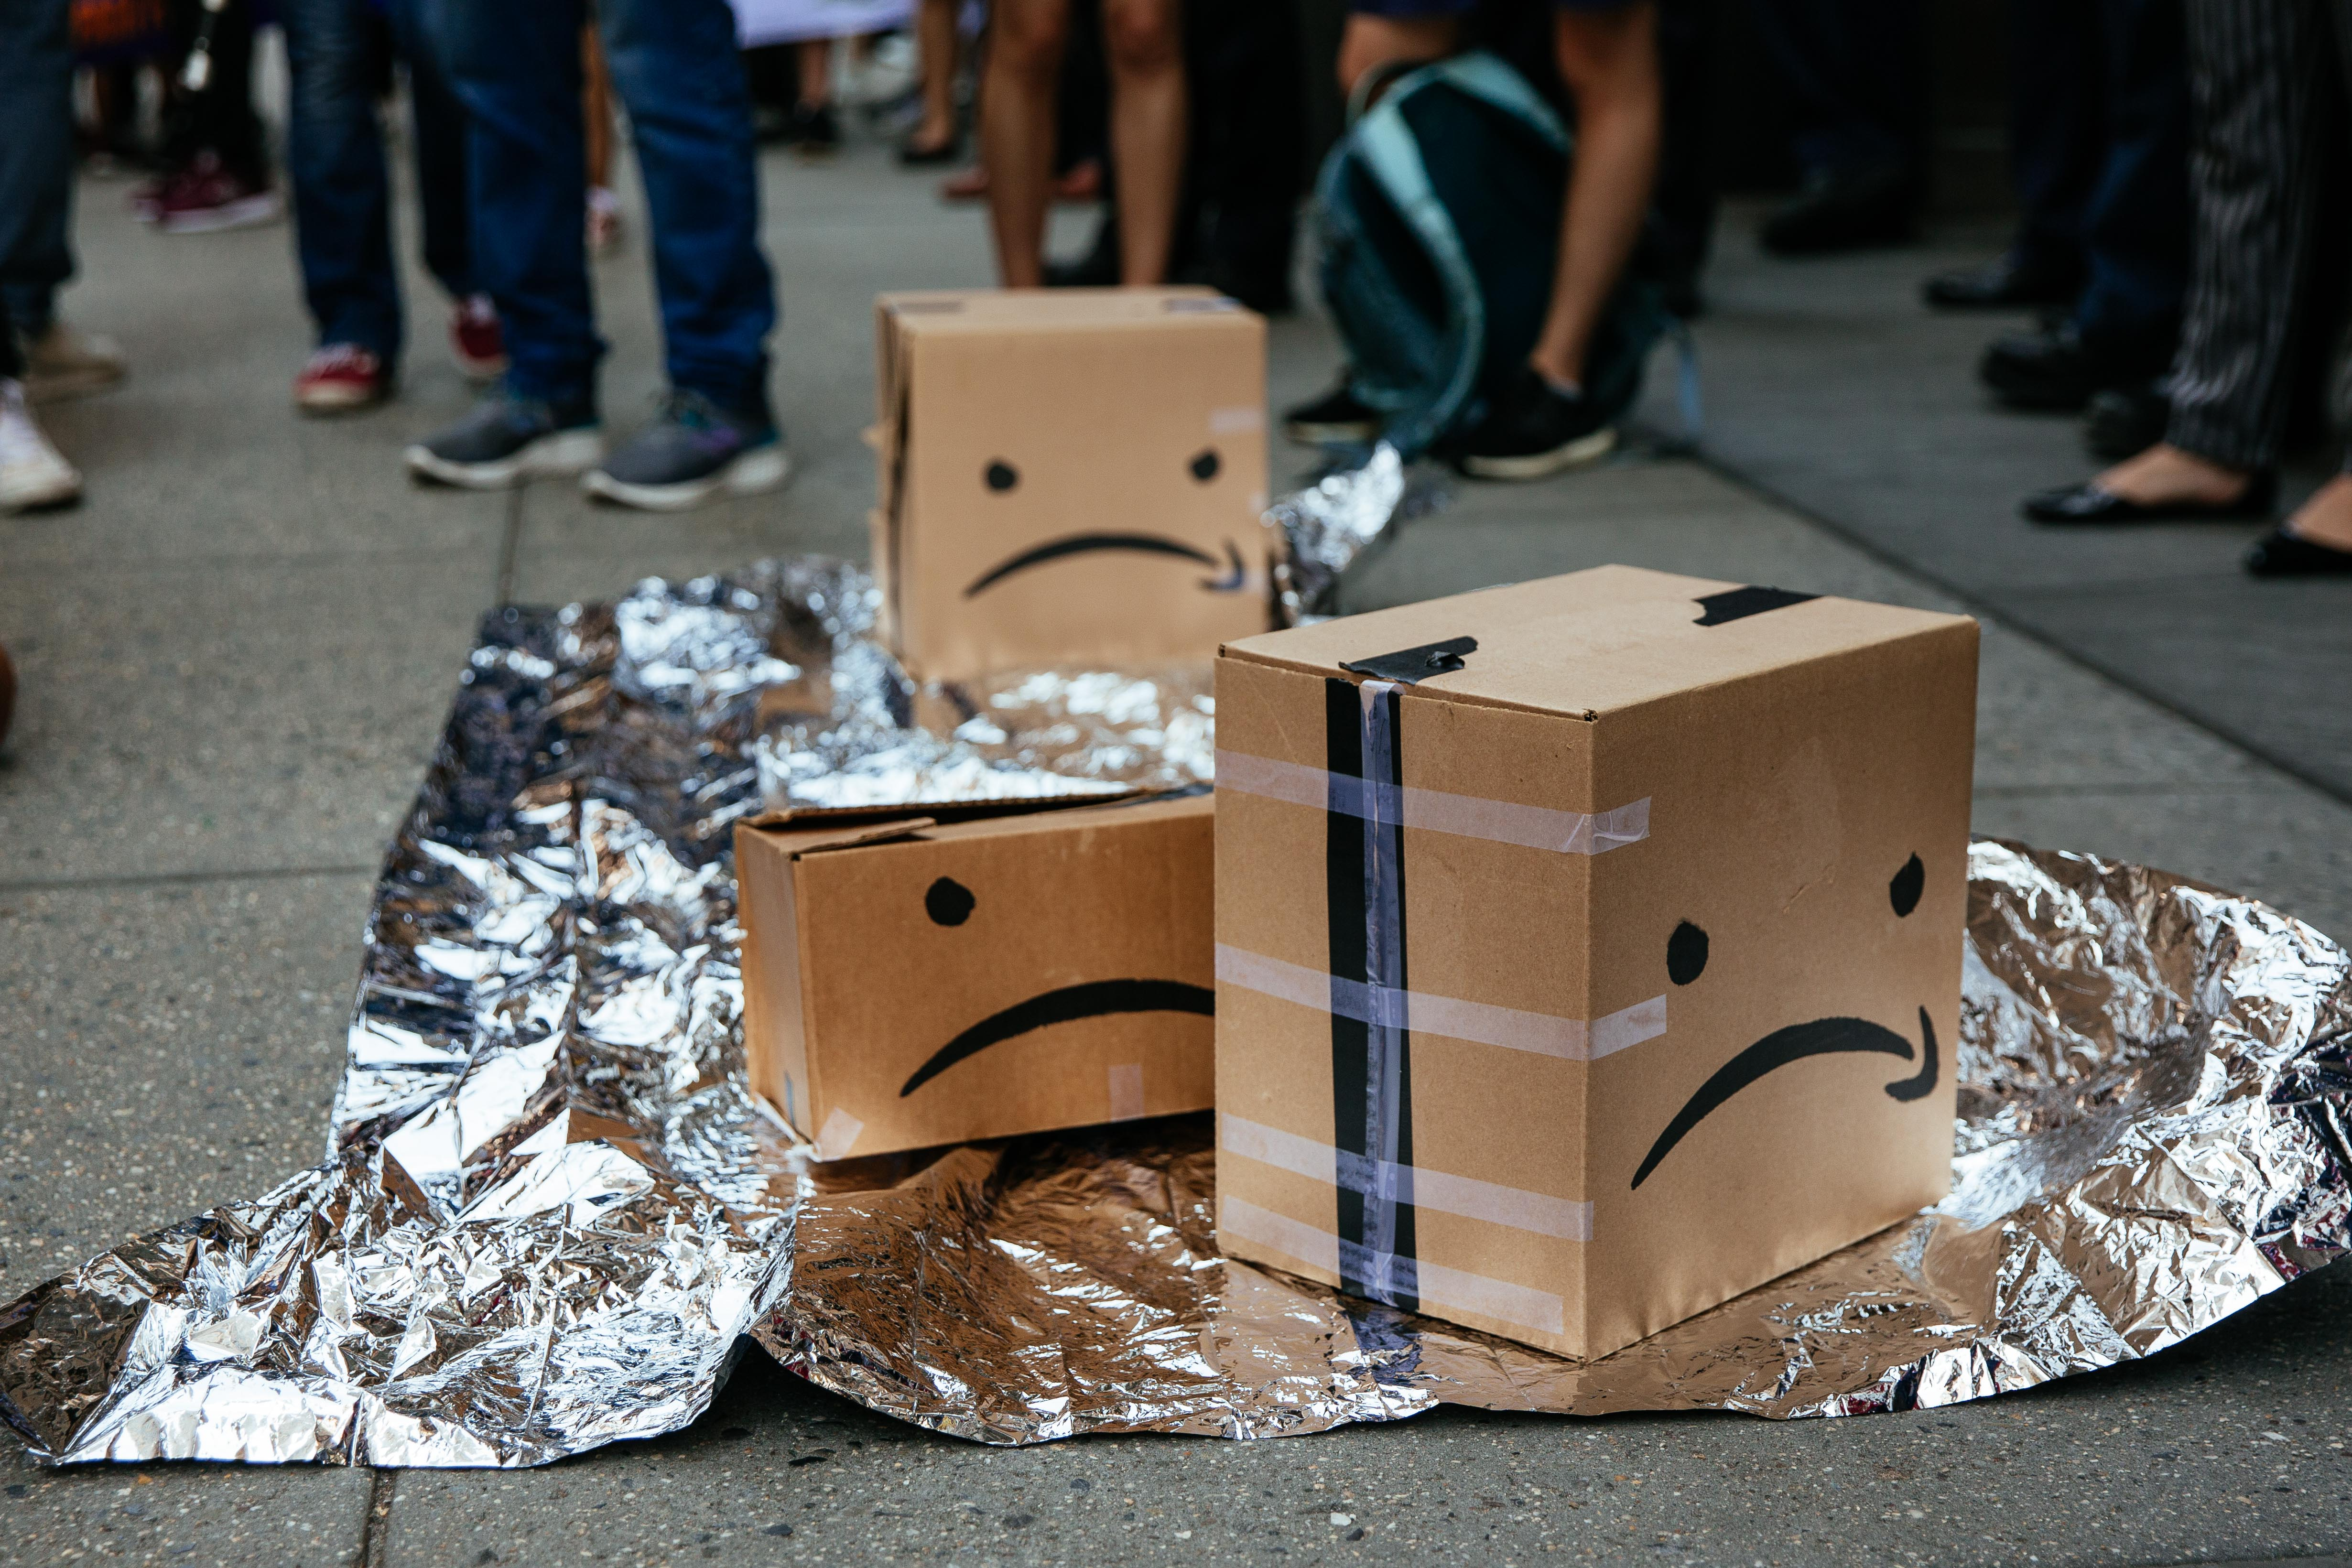 Protesters left Amazon boxes on the ground in front of an Amazon store on 34th St. on July 15, 2019, in New York City.